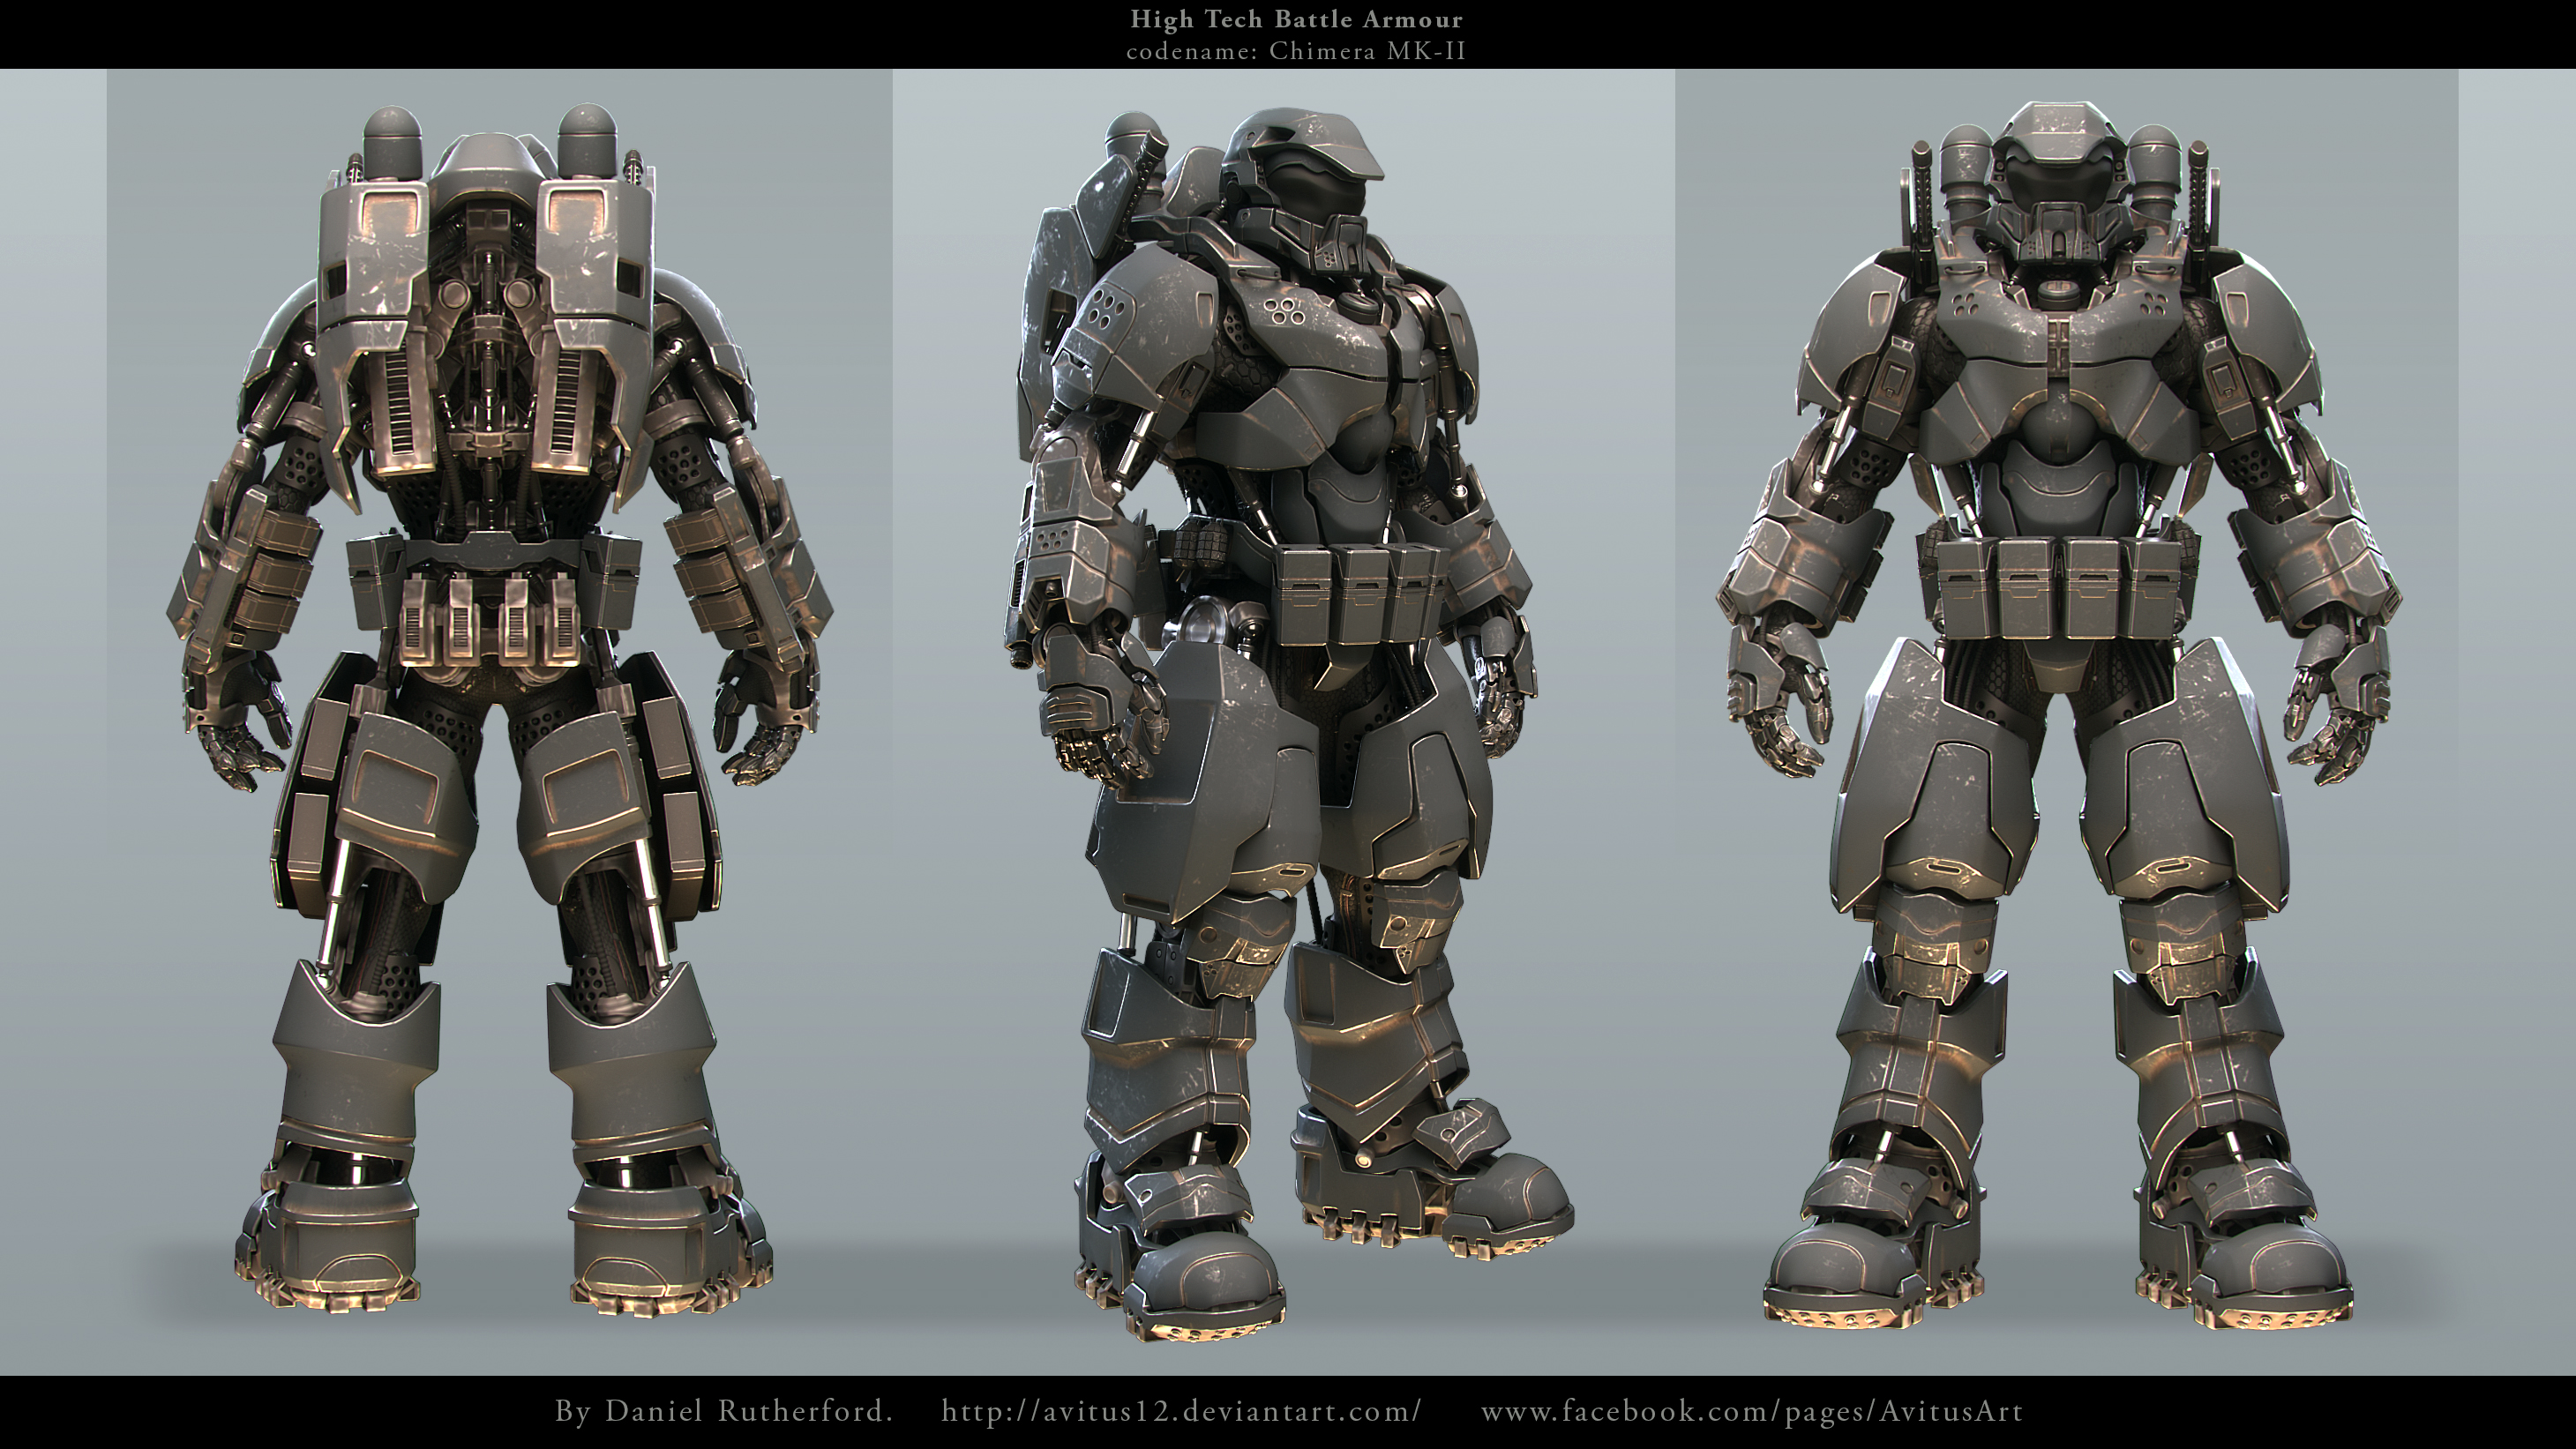 High Tech Battle Armour Codename Chimera Mk Ii By Avitus12 On Deviantart